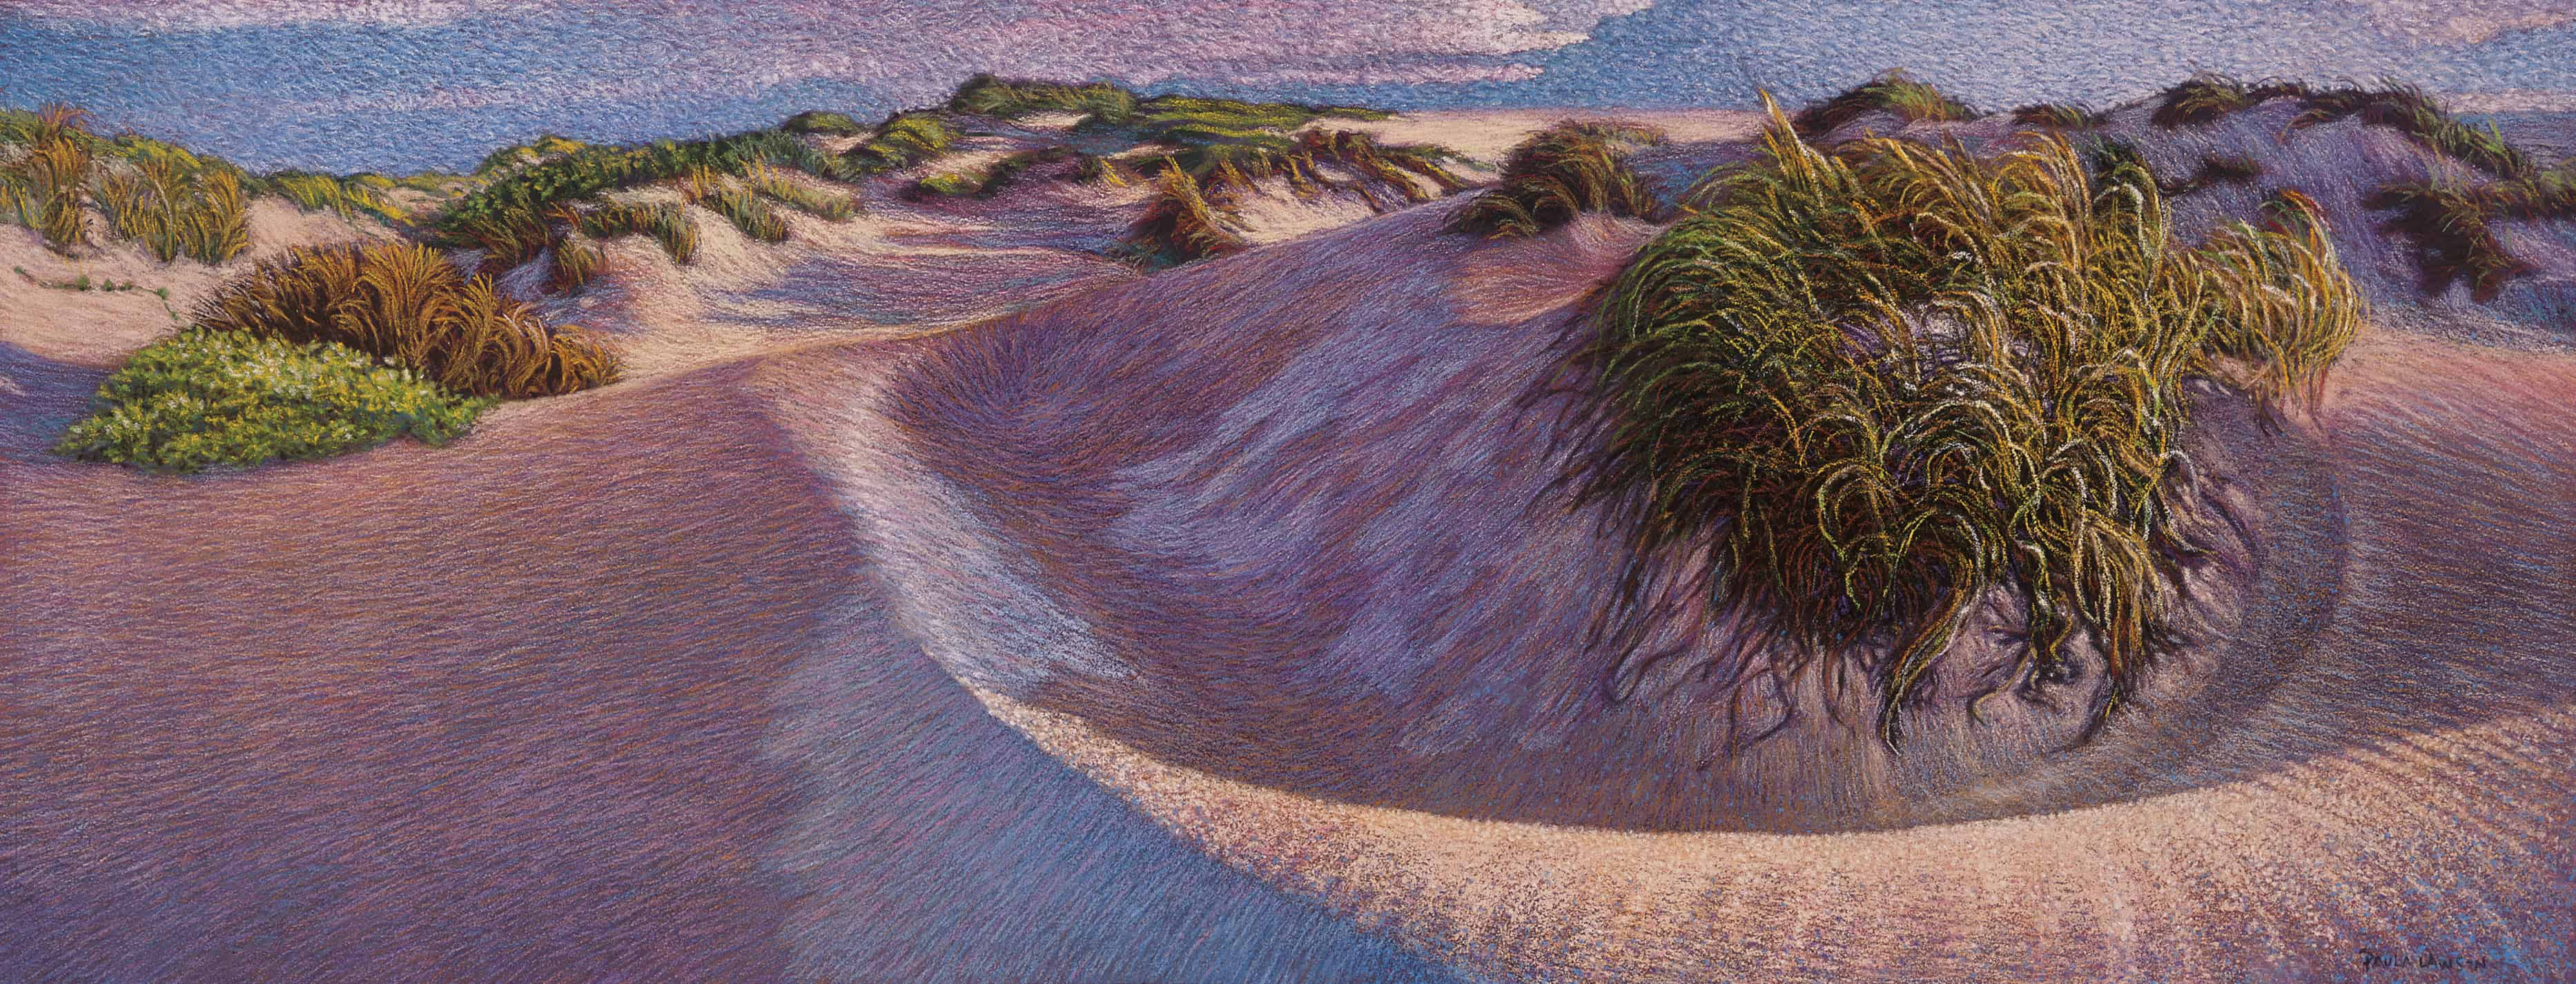 First Light on the Dunes